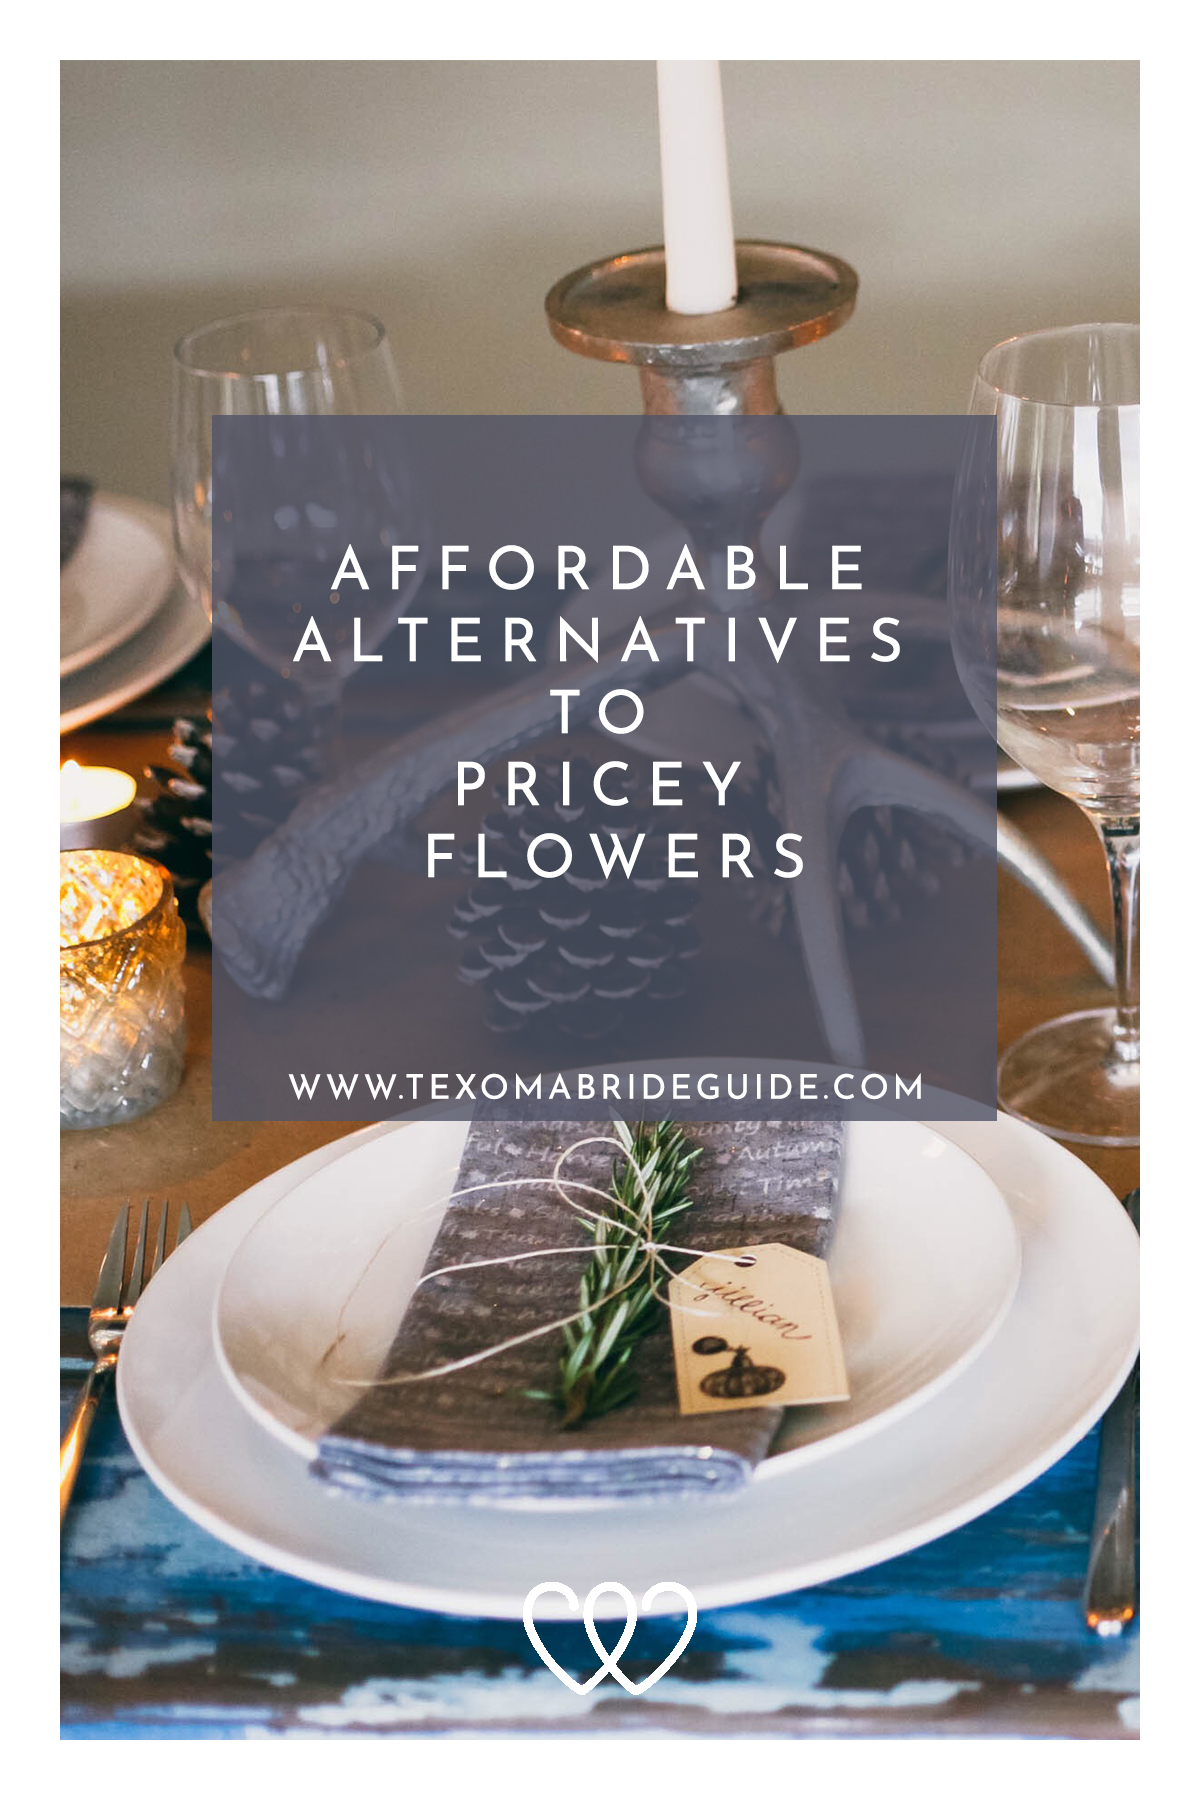 Affordable Alternatives to Pricey Flowers | Texoma Bride Guide Blog